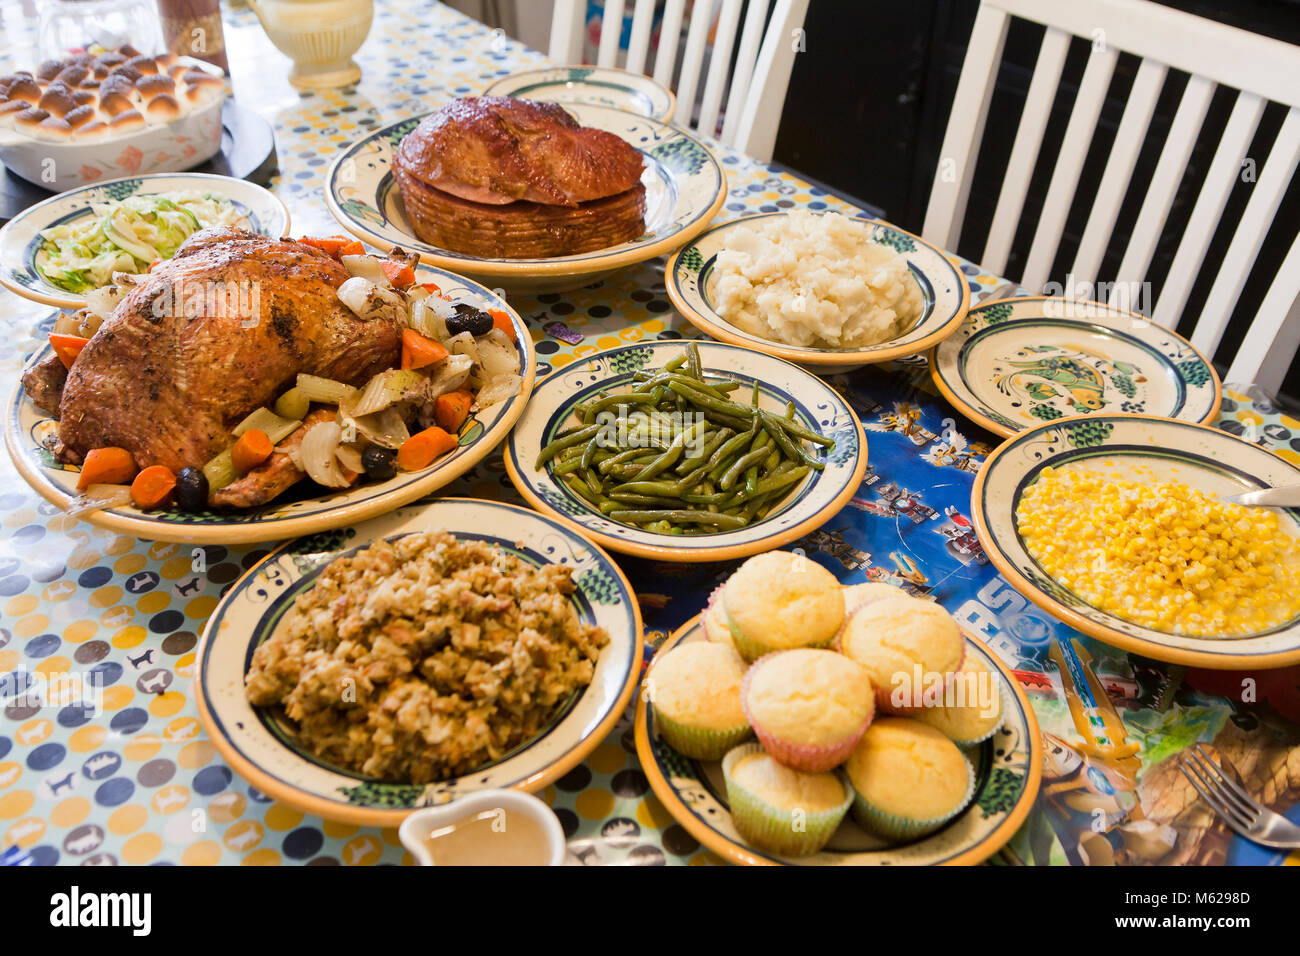 Thanksgiving Dinner Table Stock Photos Thanksgiving Dinner Table